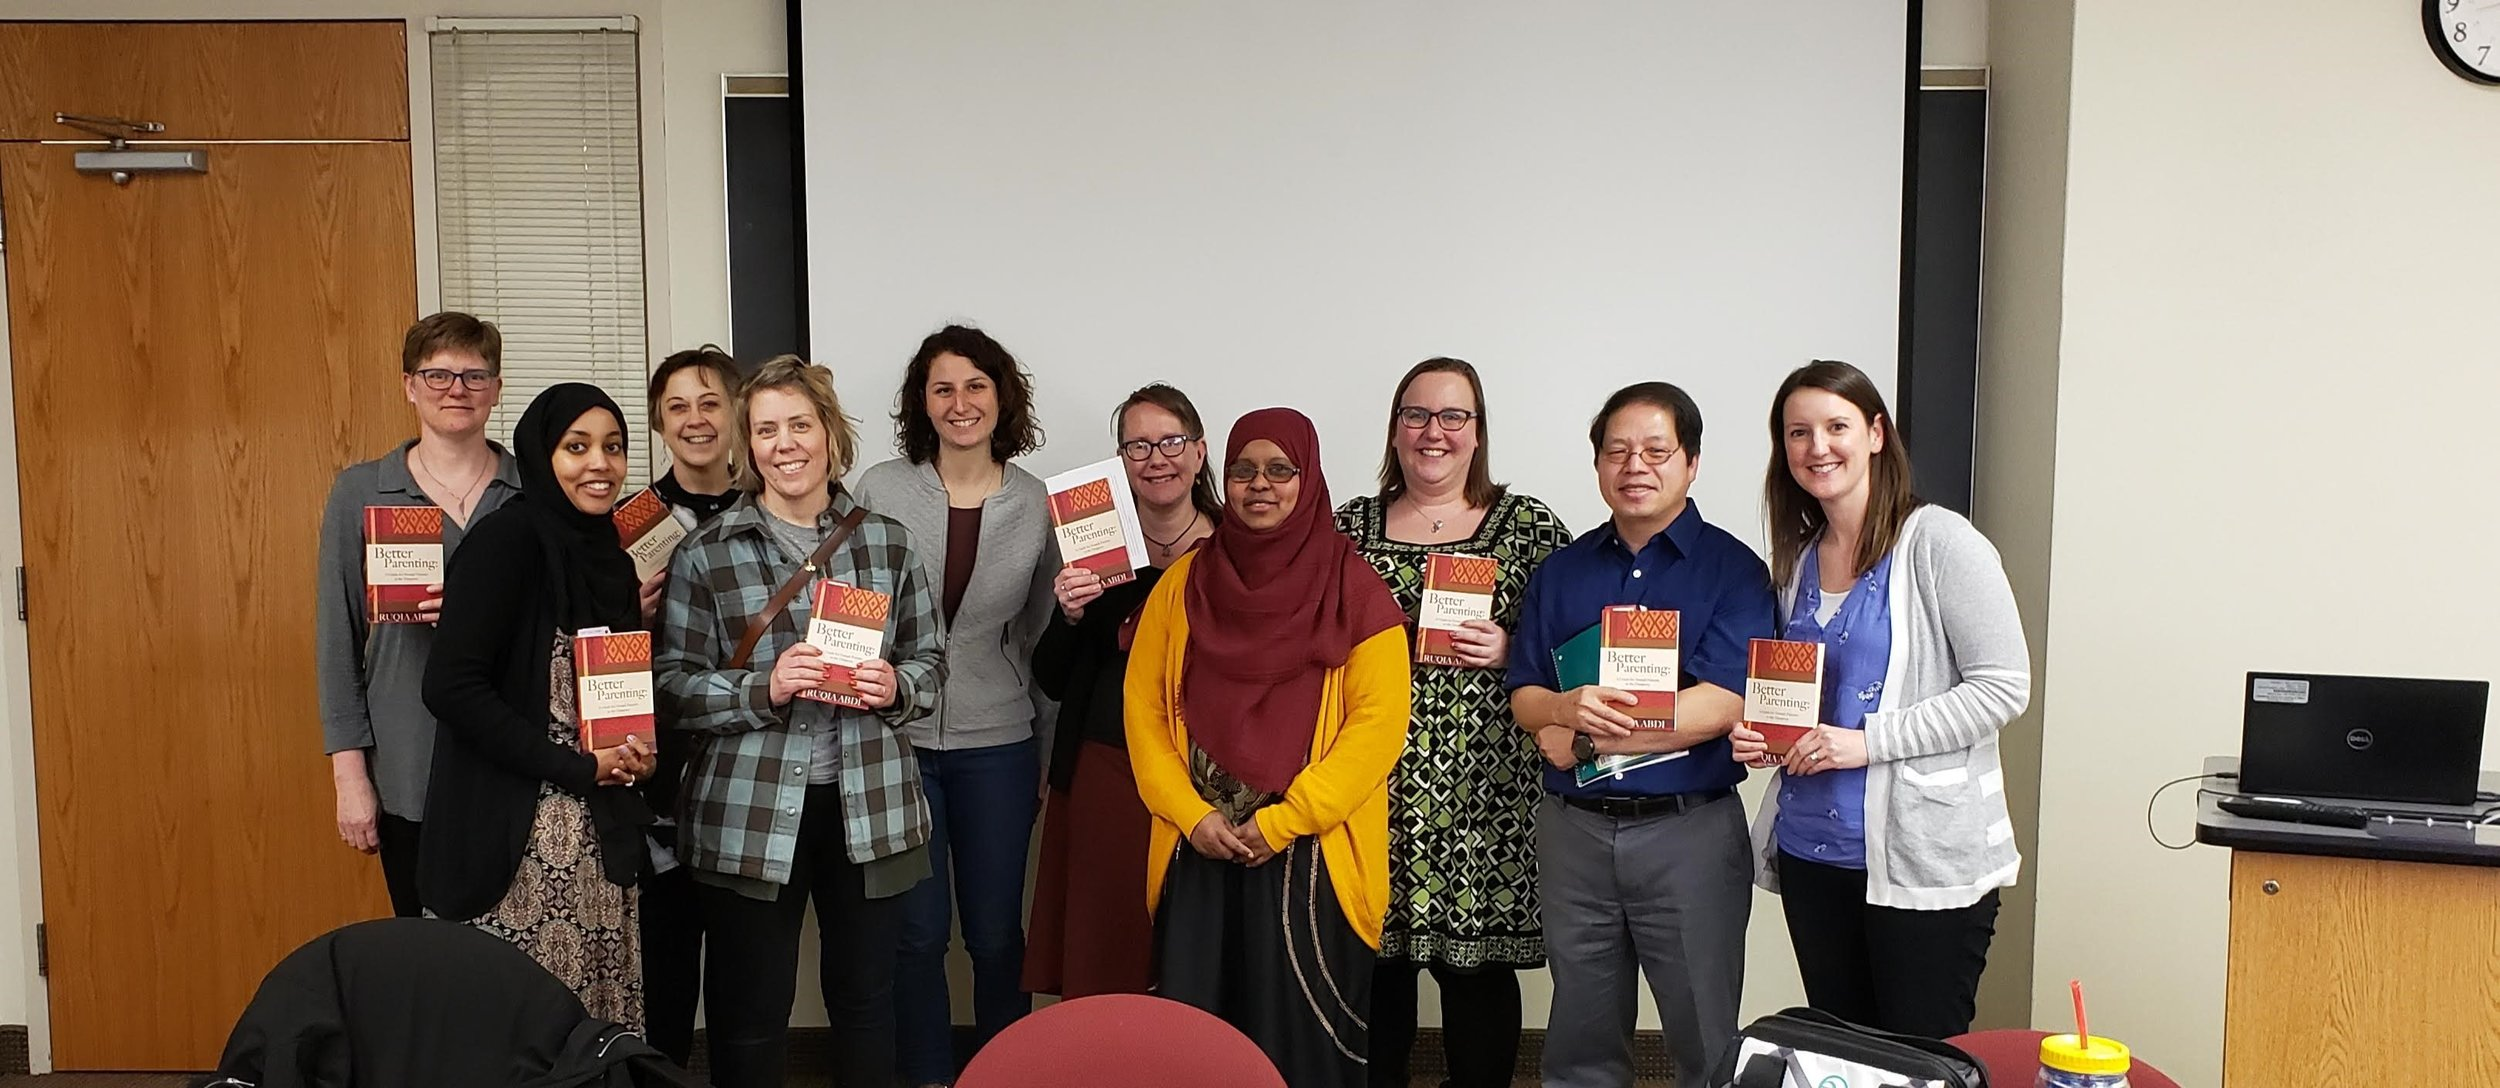 University of Minnesota, department of Family Social Sciences students and faculty members.